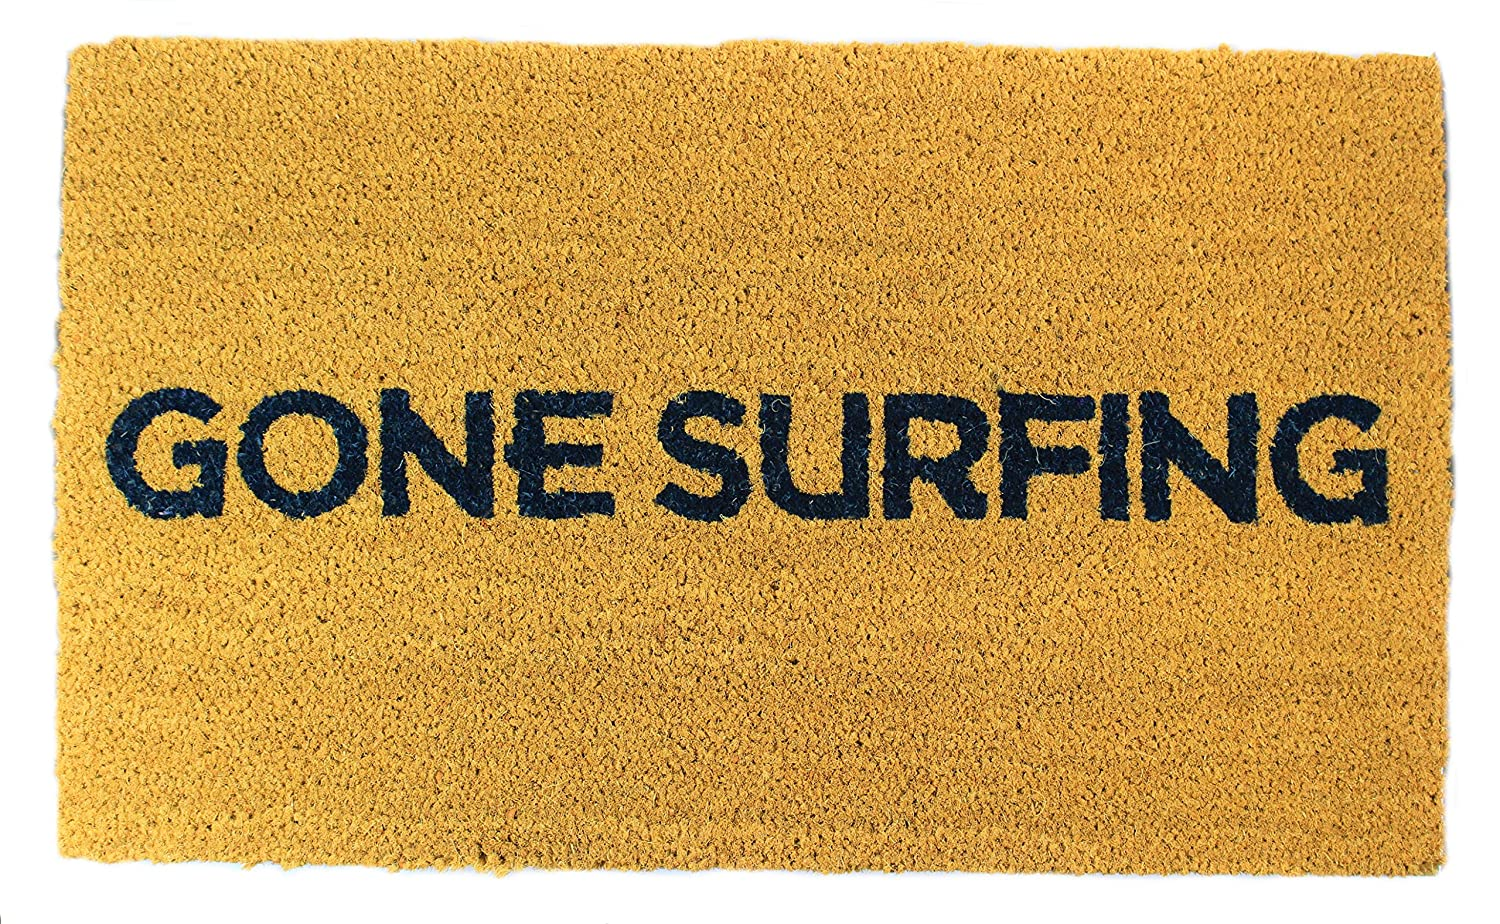 Gone Surfing Doormat